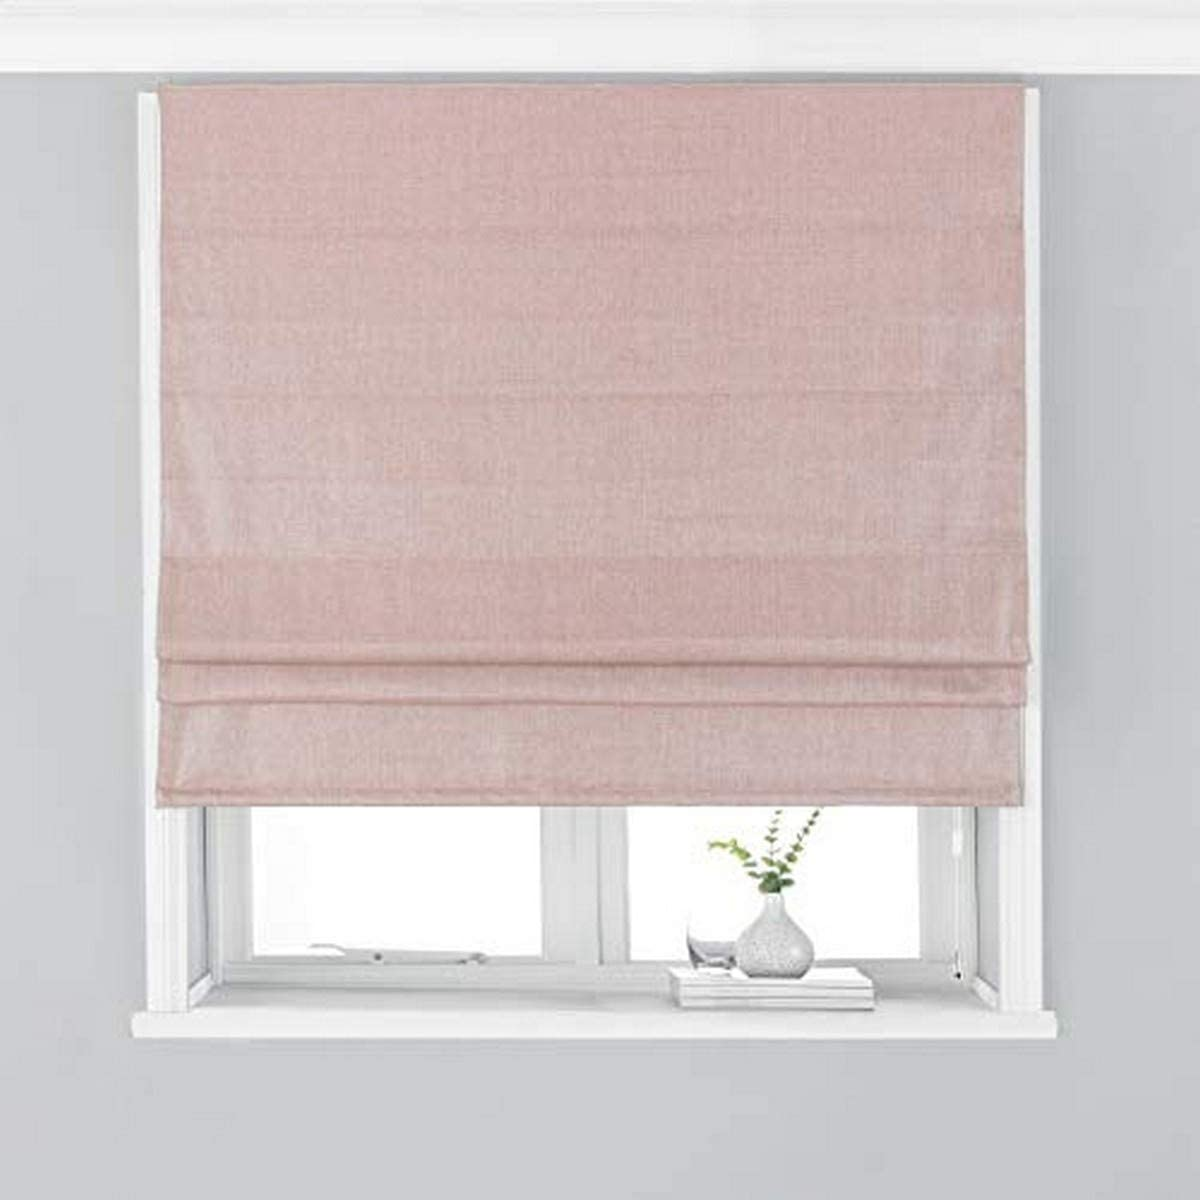 Riva Paoletti Atlantic Blackout Roman Blind Blush Pink Woven Twill Fabric Temperature Control Ready Made Fittings Included 100 Polyester 61 Cm Width X 137 Cm Drop